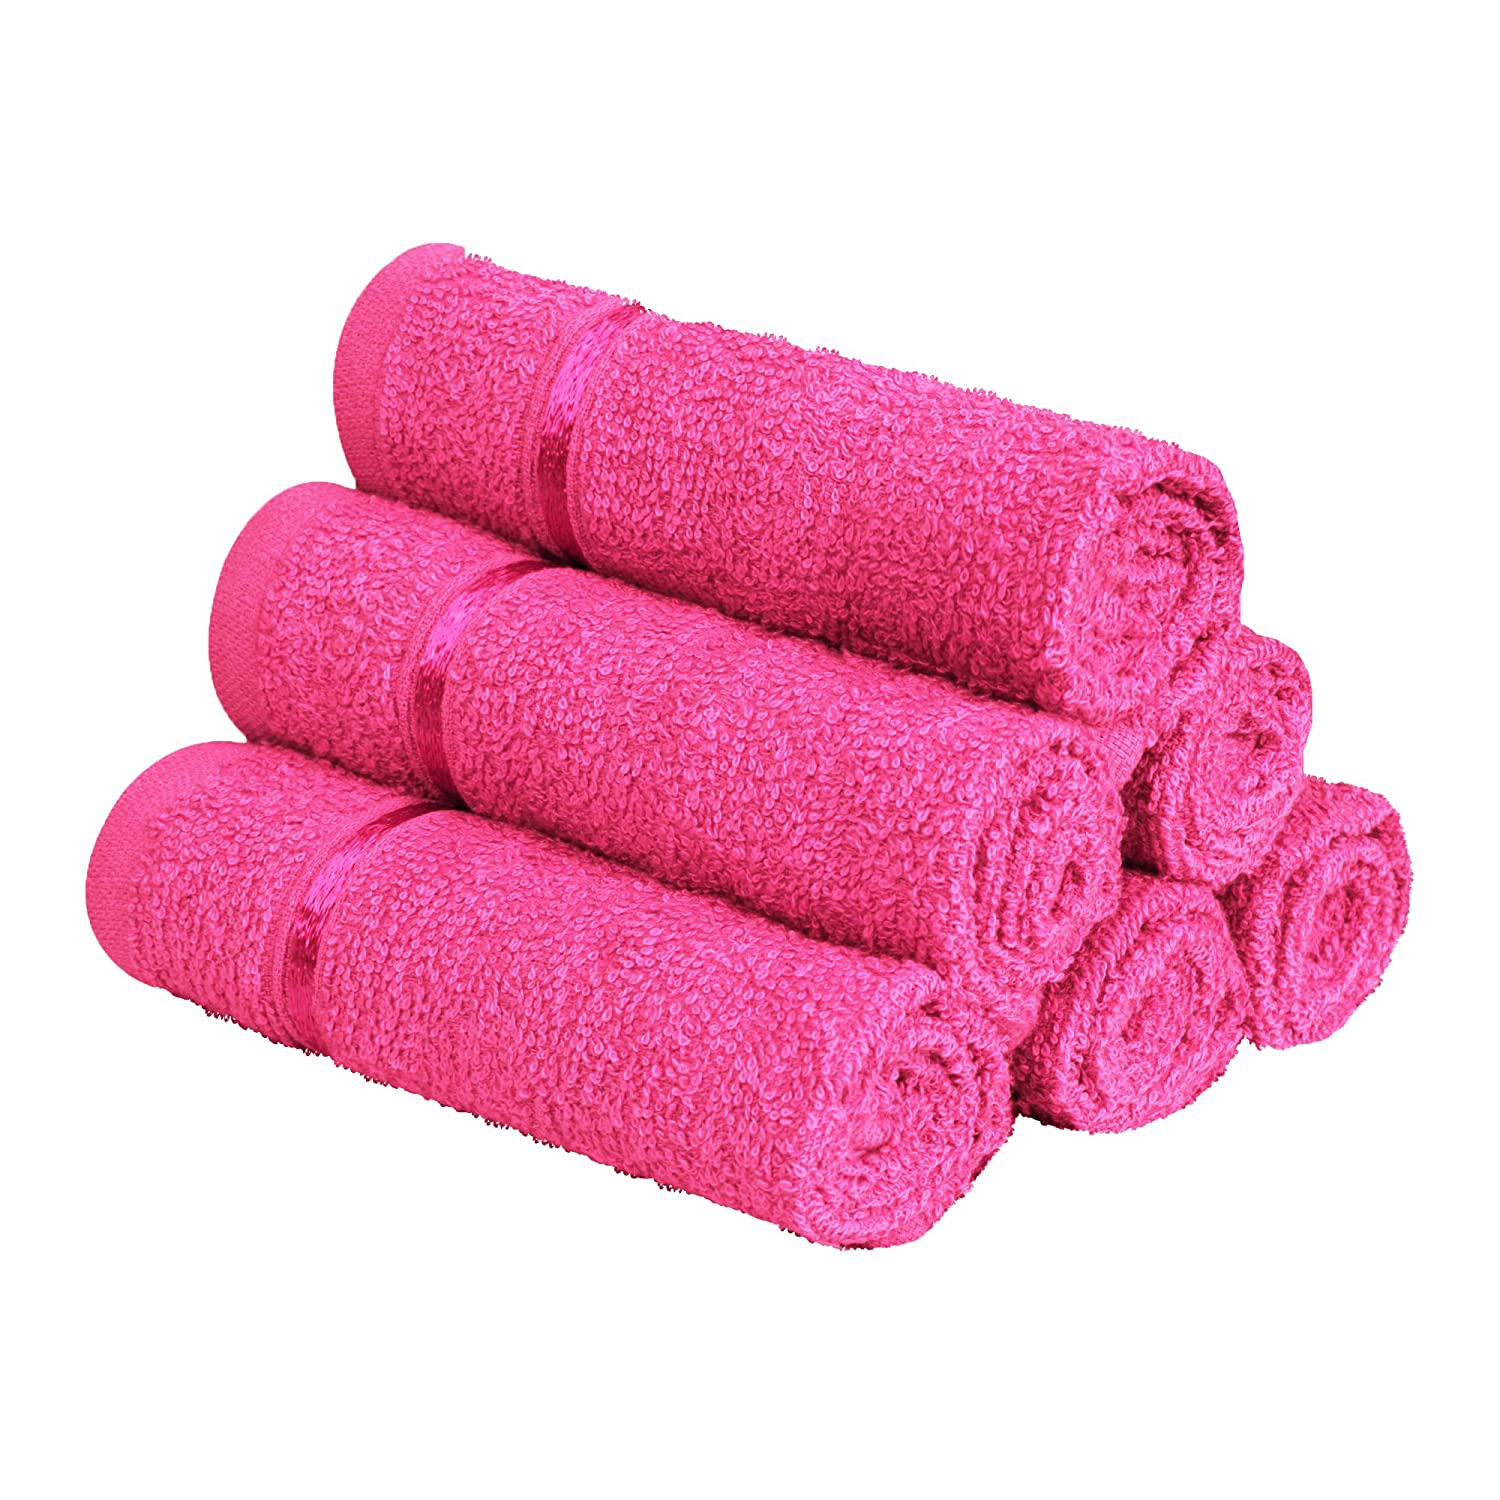 Story@Home 450 GSM Ultra Soft, Super Absorbent, Antibacterial Treatment, Face Towel, 30x30 cm (Pink) - Pack of 6